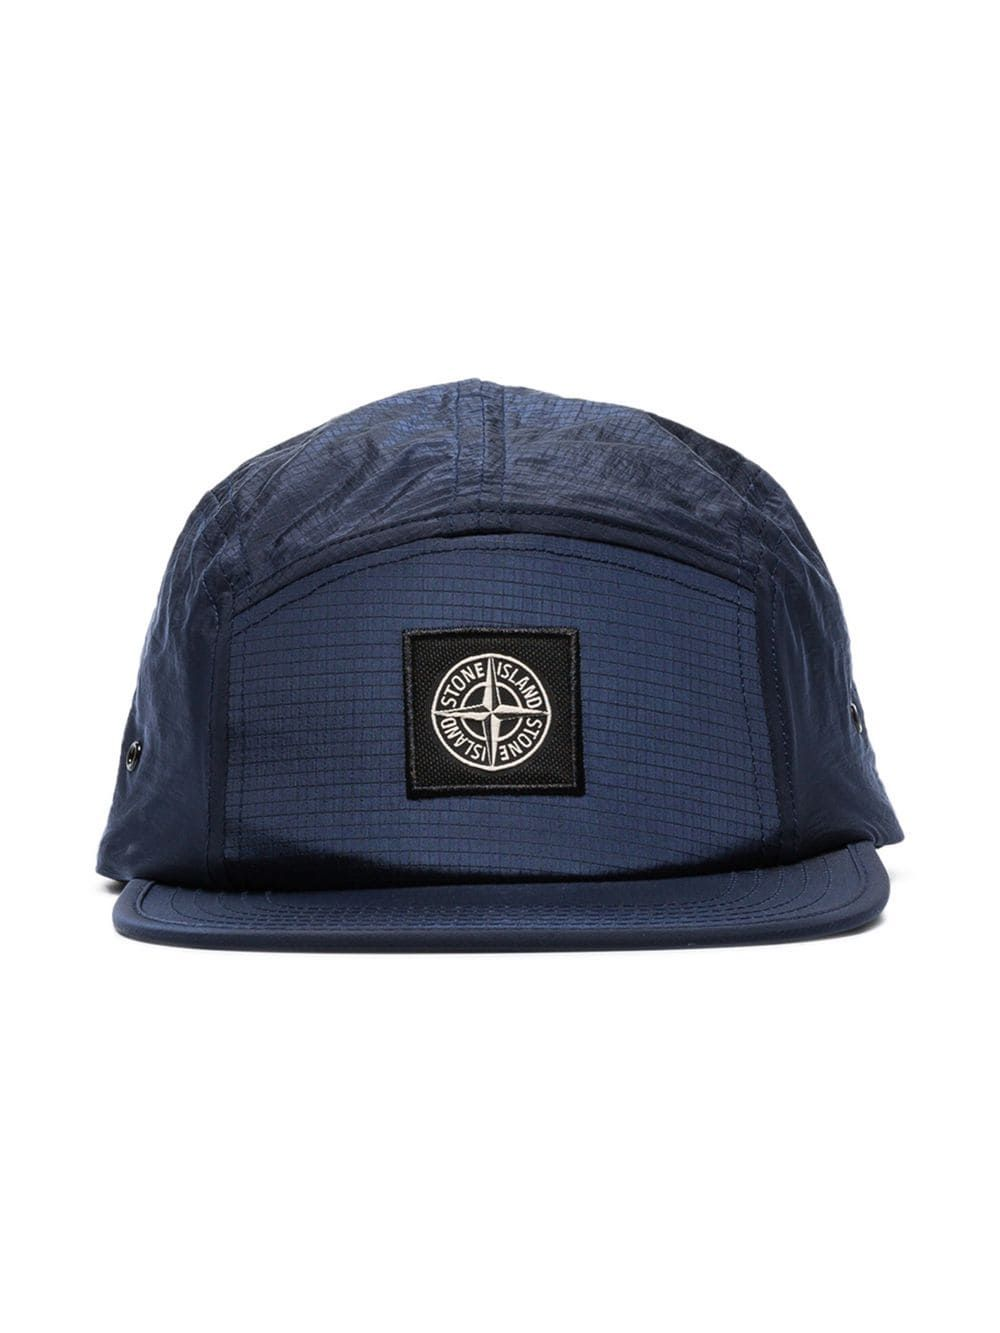 Logo In Stone Island Embroidered Patch HatProducts 2019 Blue 4jALqc35R